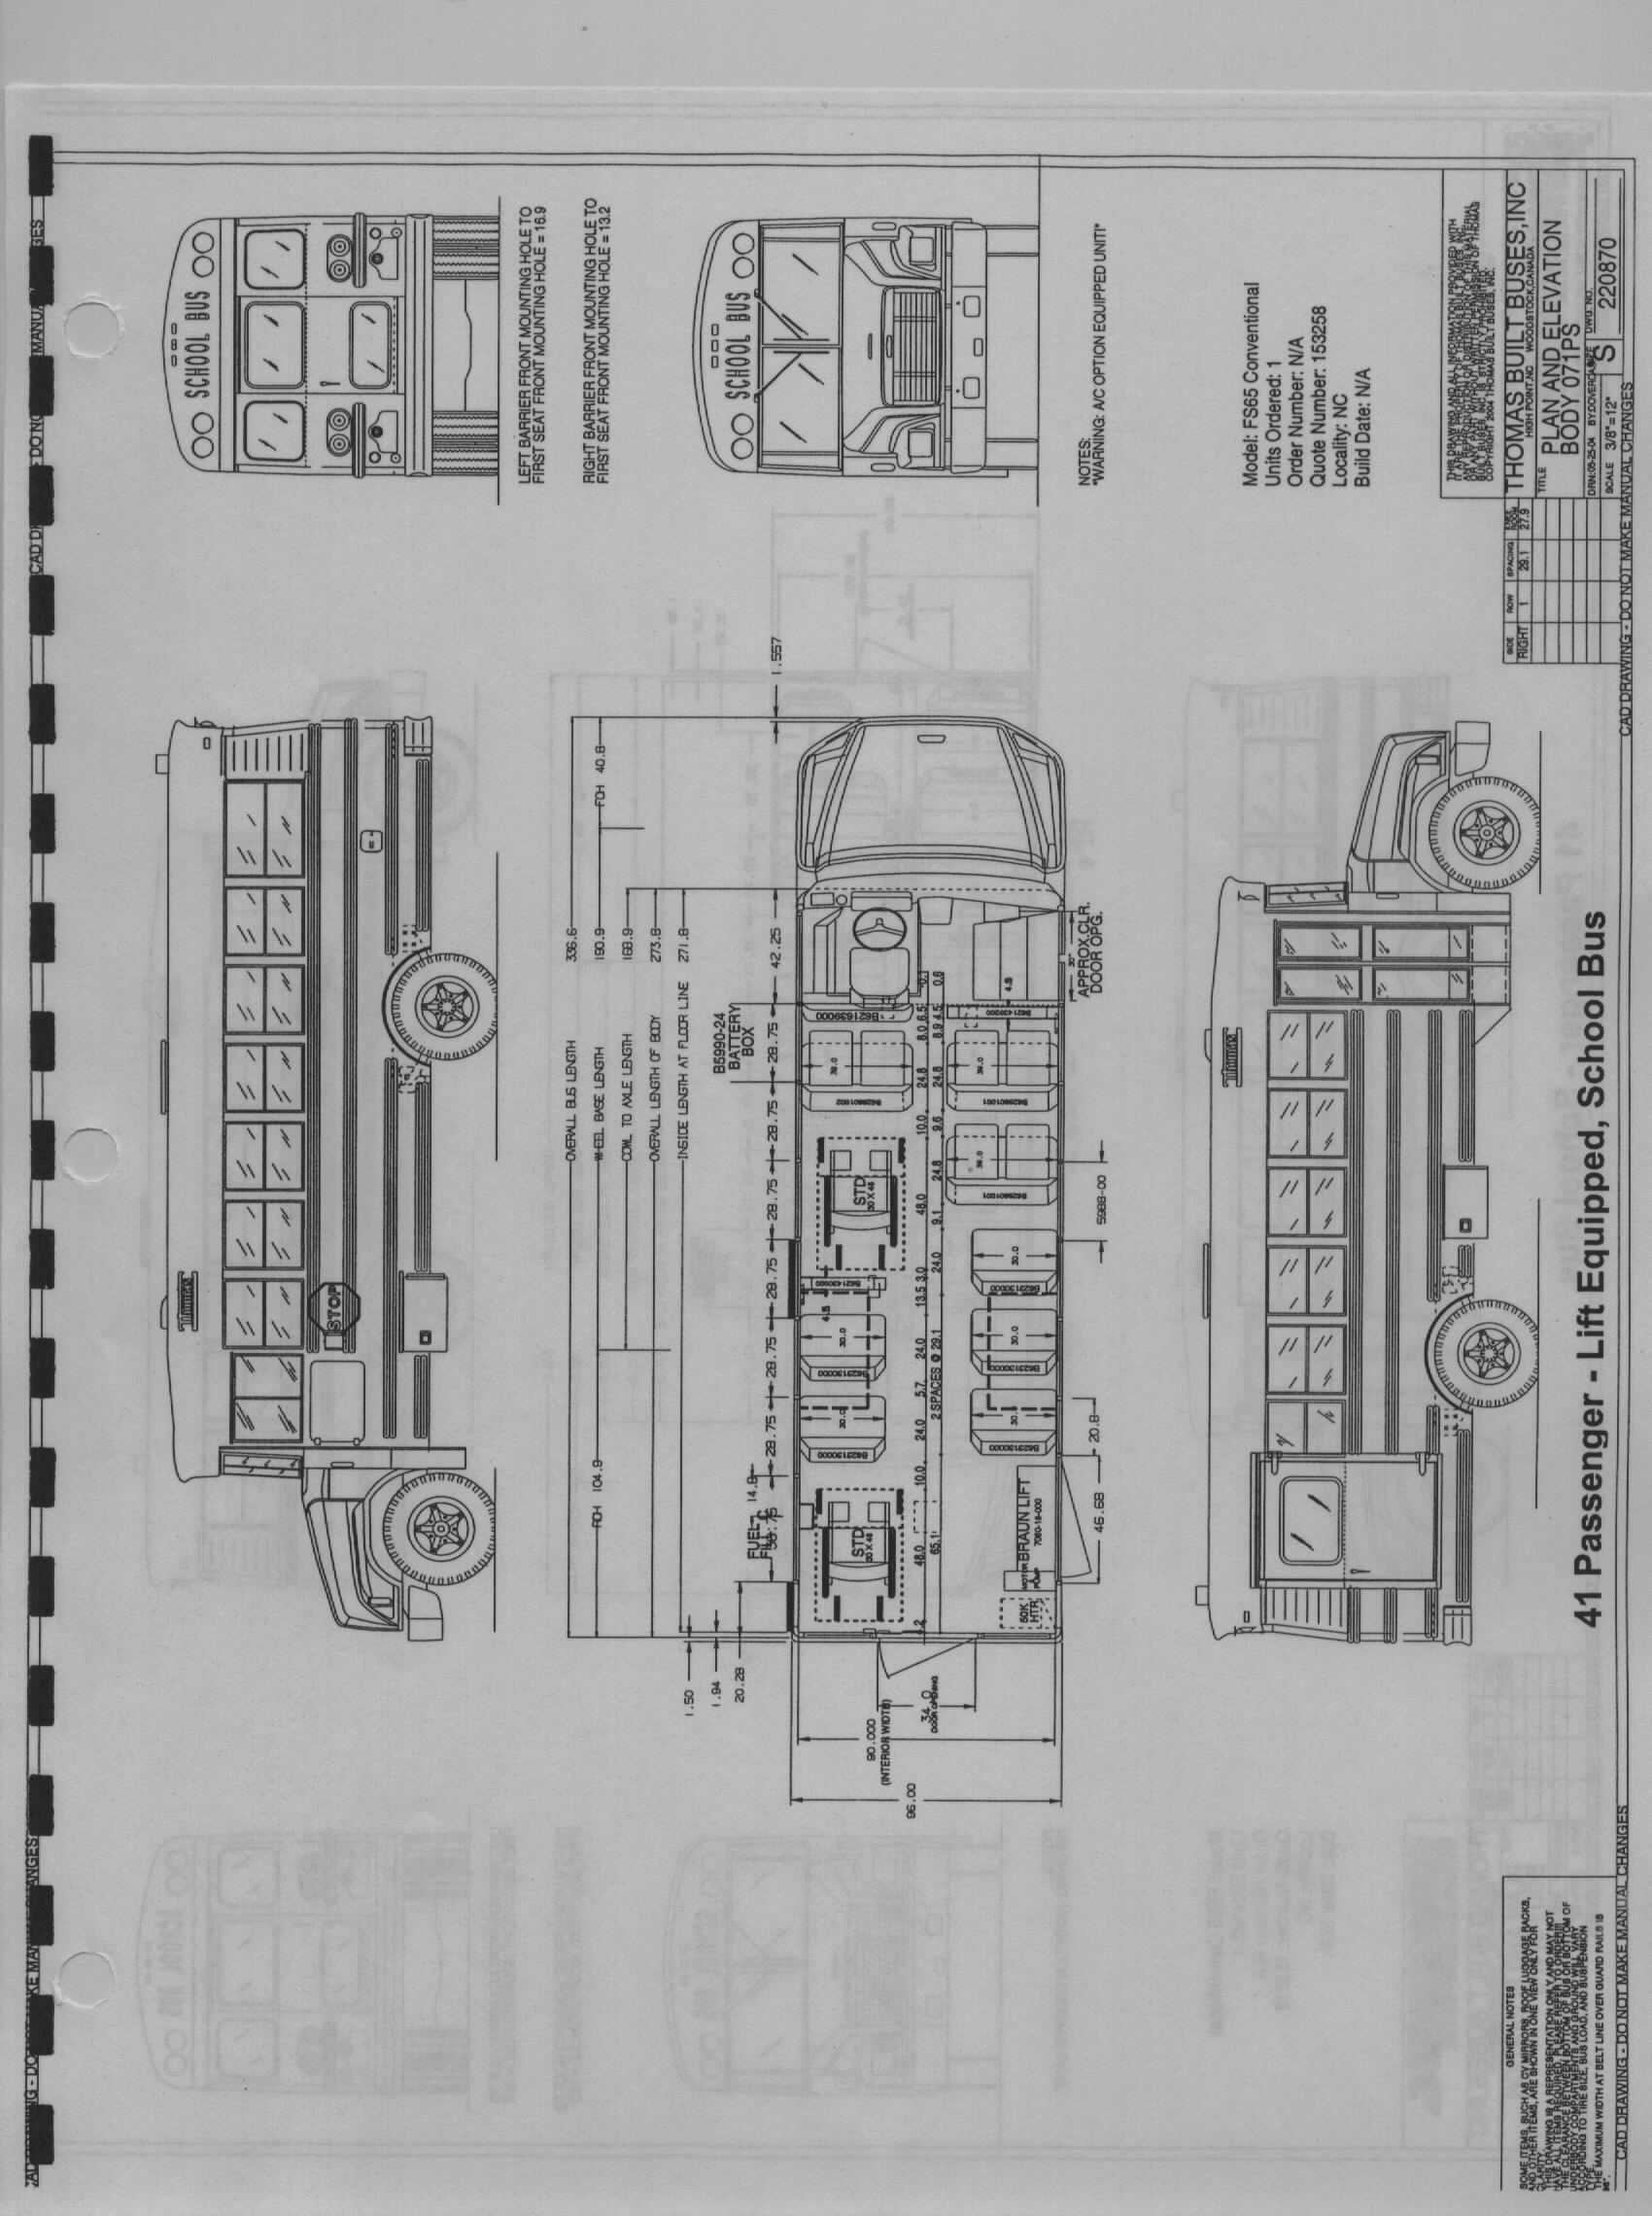 2003 Thomas Bus Wiring Schematics